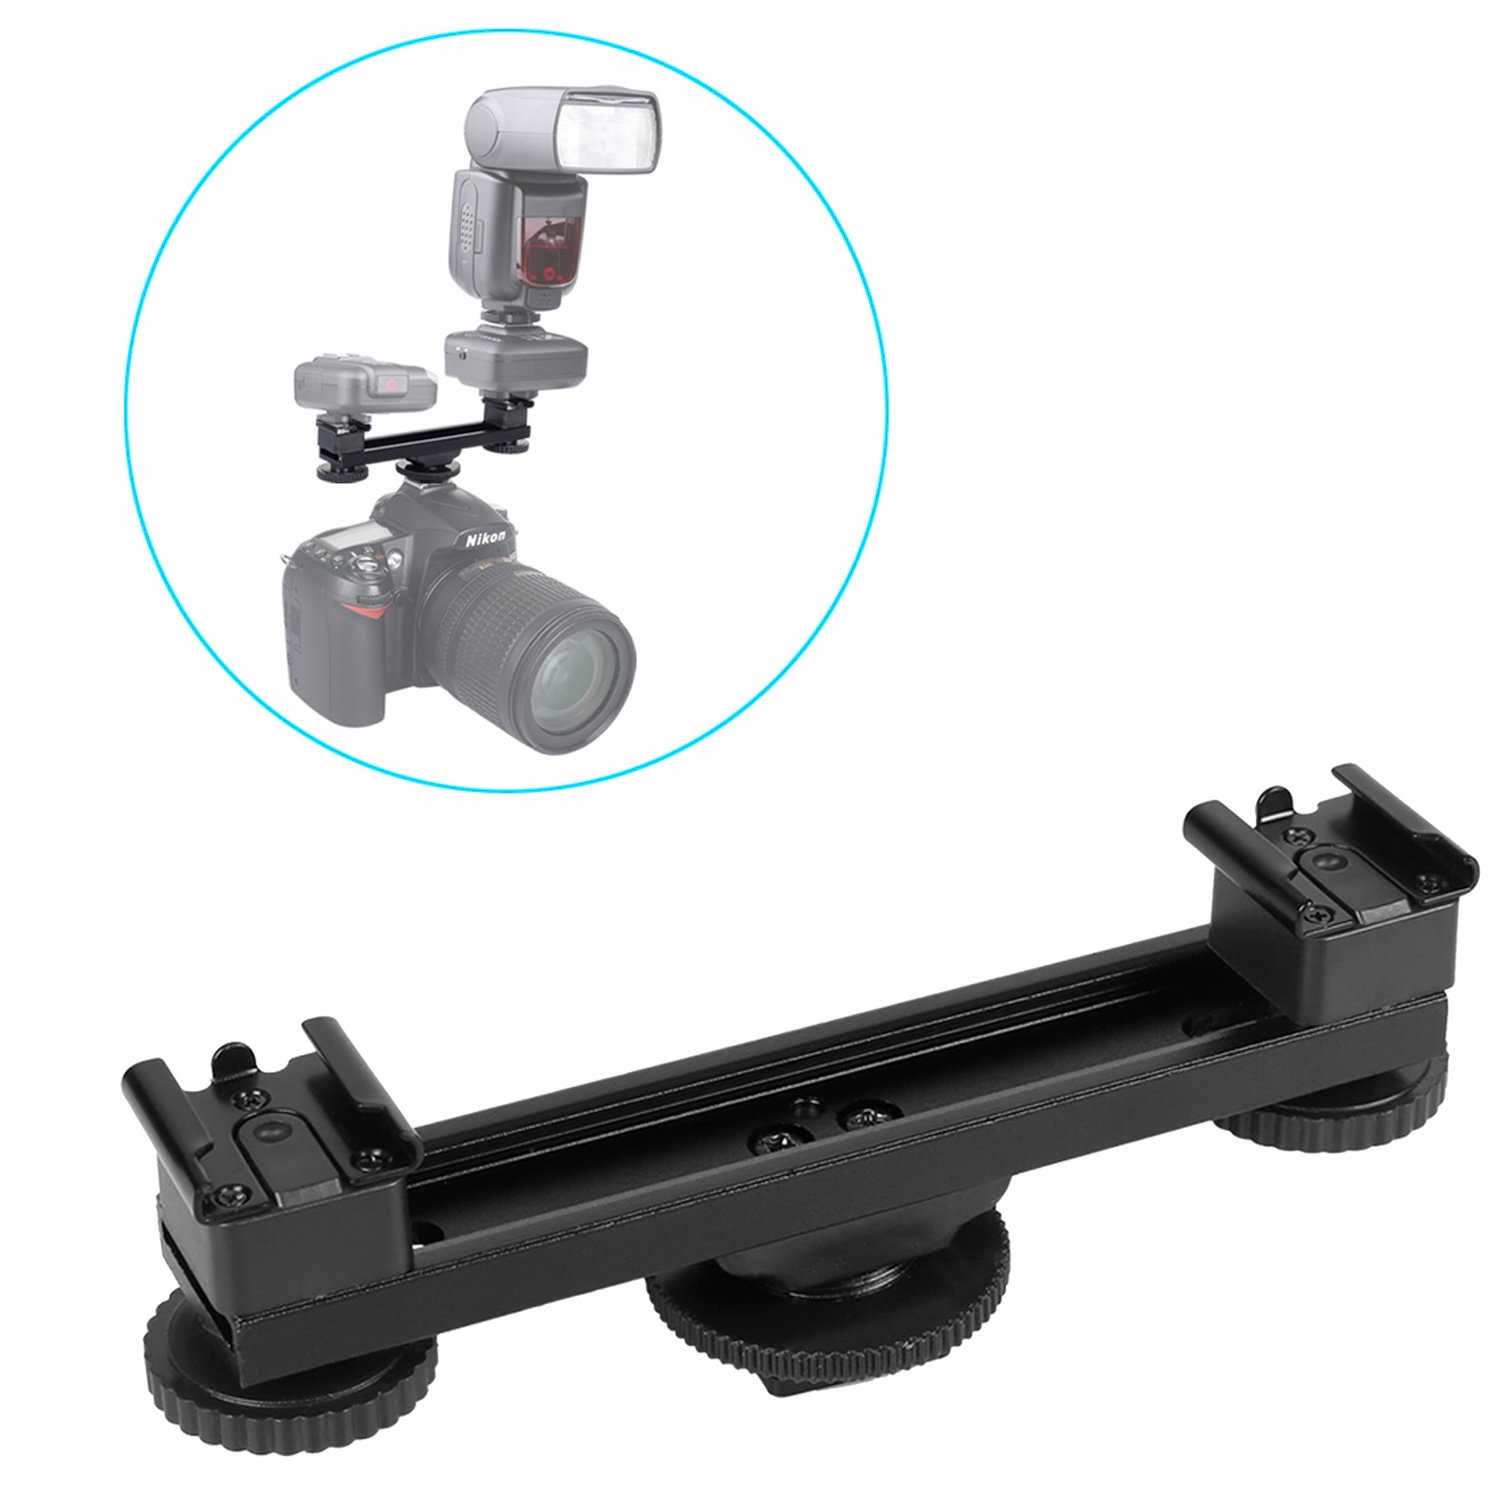 Kamisafe Universal 1 to 2 Hot Shoe Mount Extension Bar Dual Bracket with 1/4'' Thread Holes Compatible with Nikon Canon Sony DSLR Camera Camcorder DV Flash LED Video Light Microphone